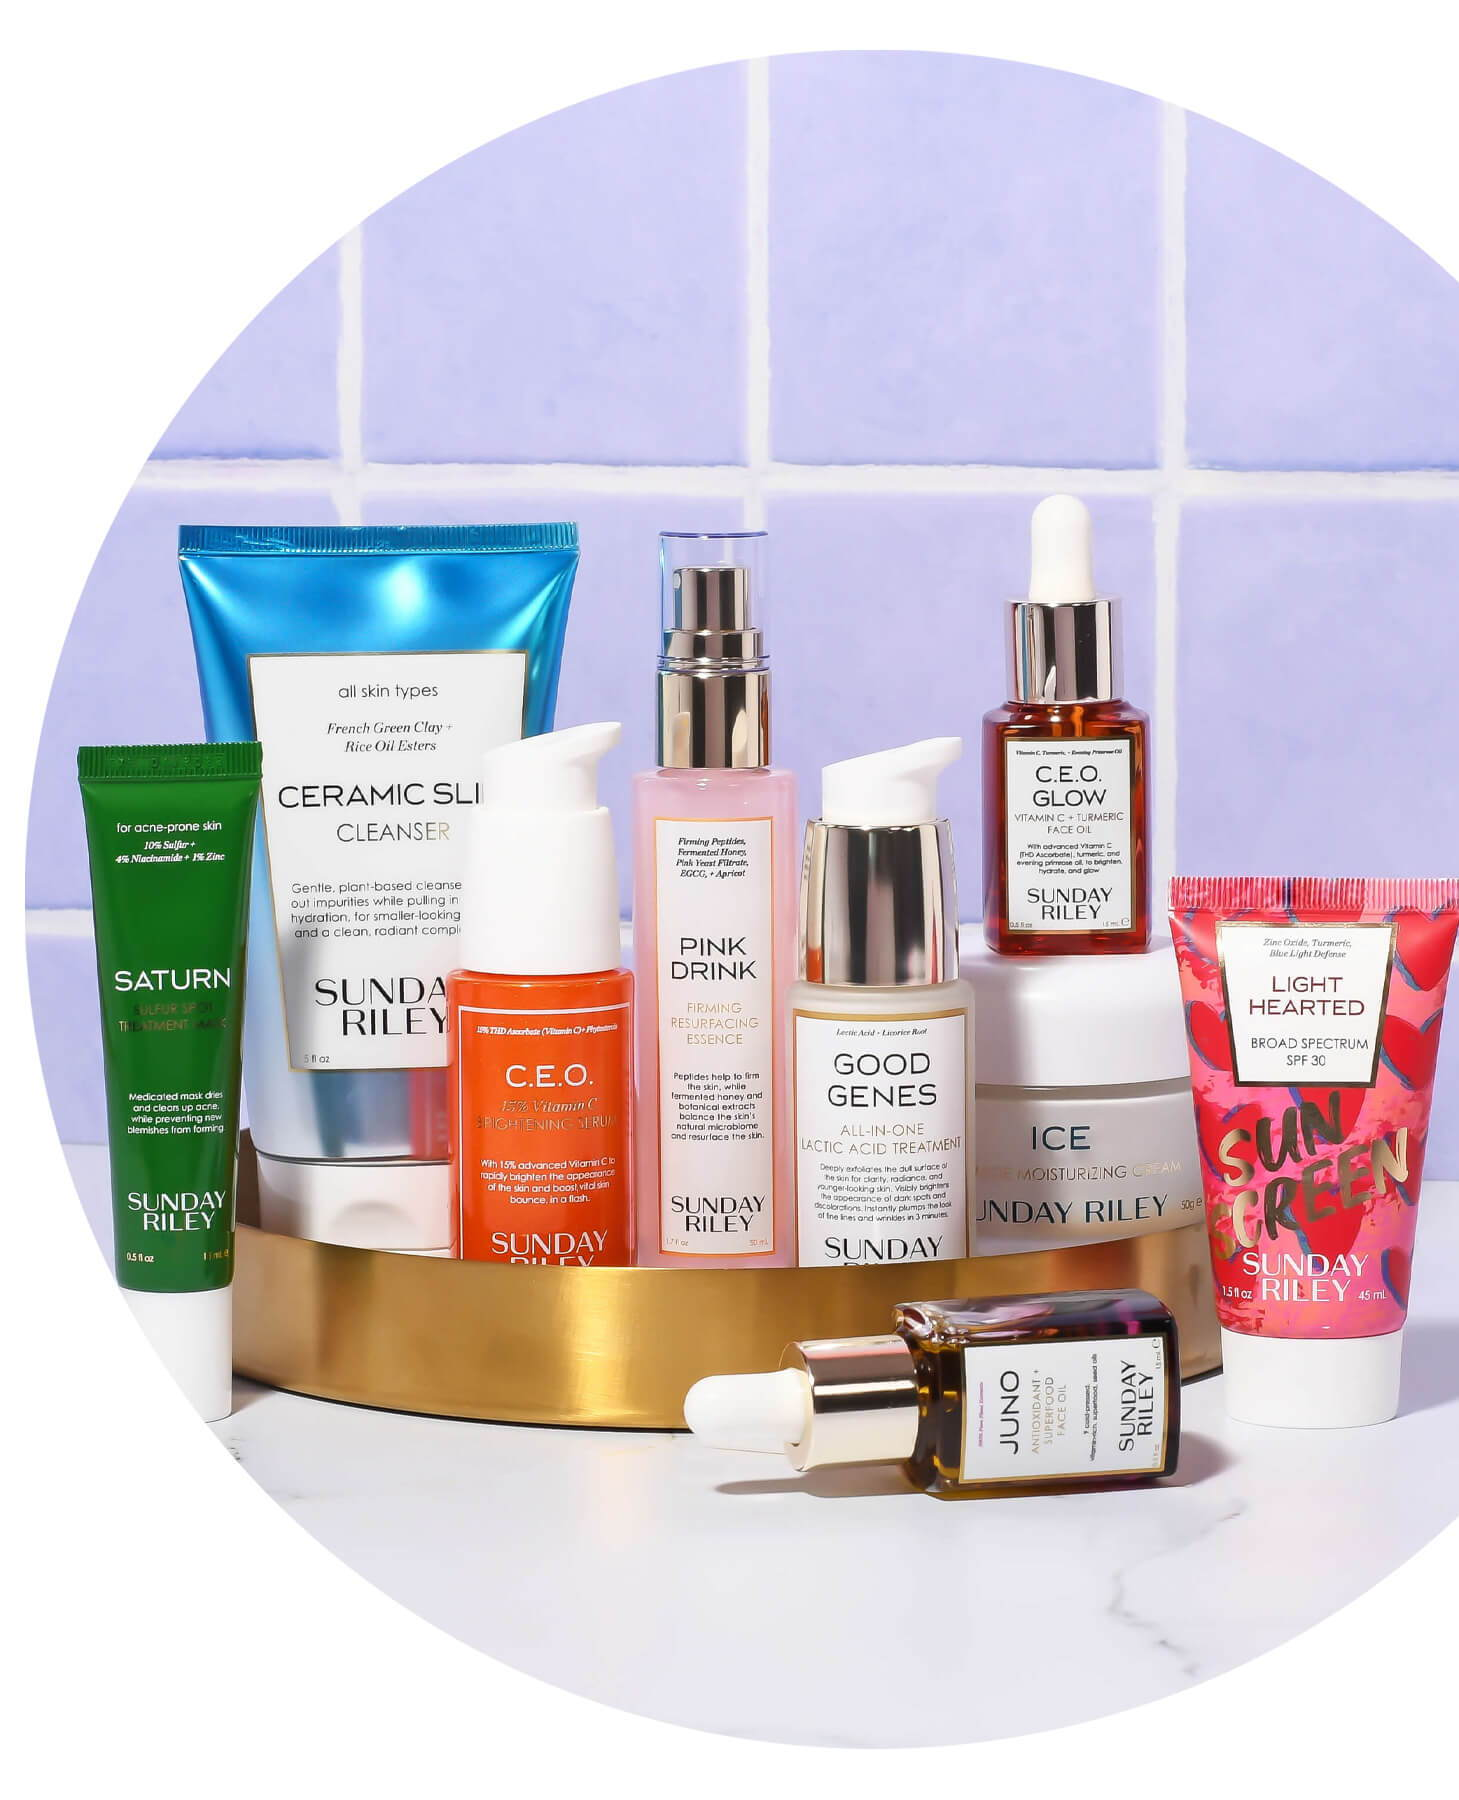 A pregnancy-safe skincare lineup to support your changing needs.